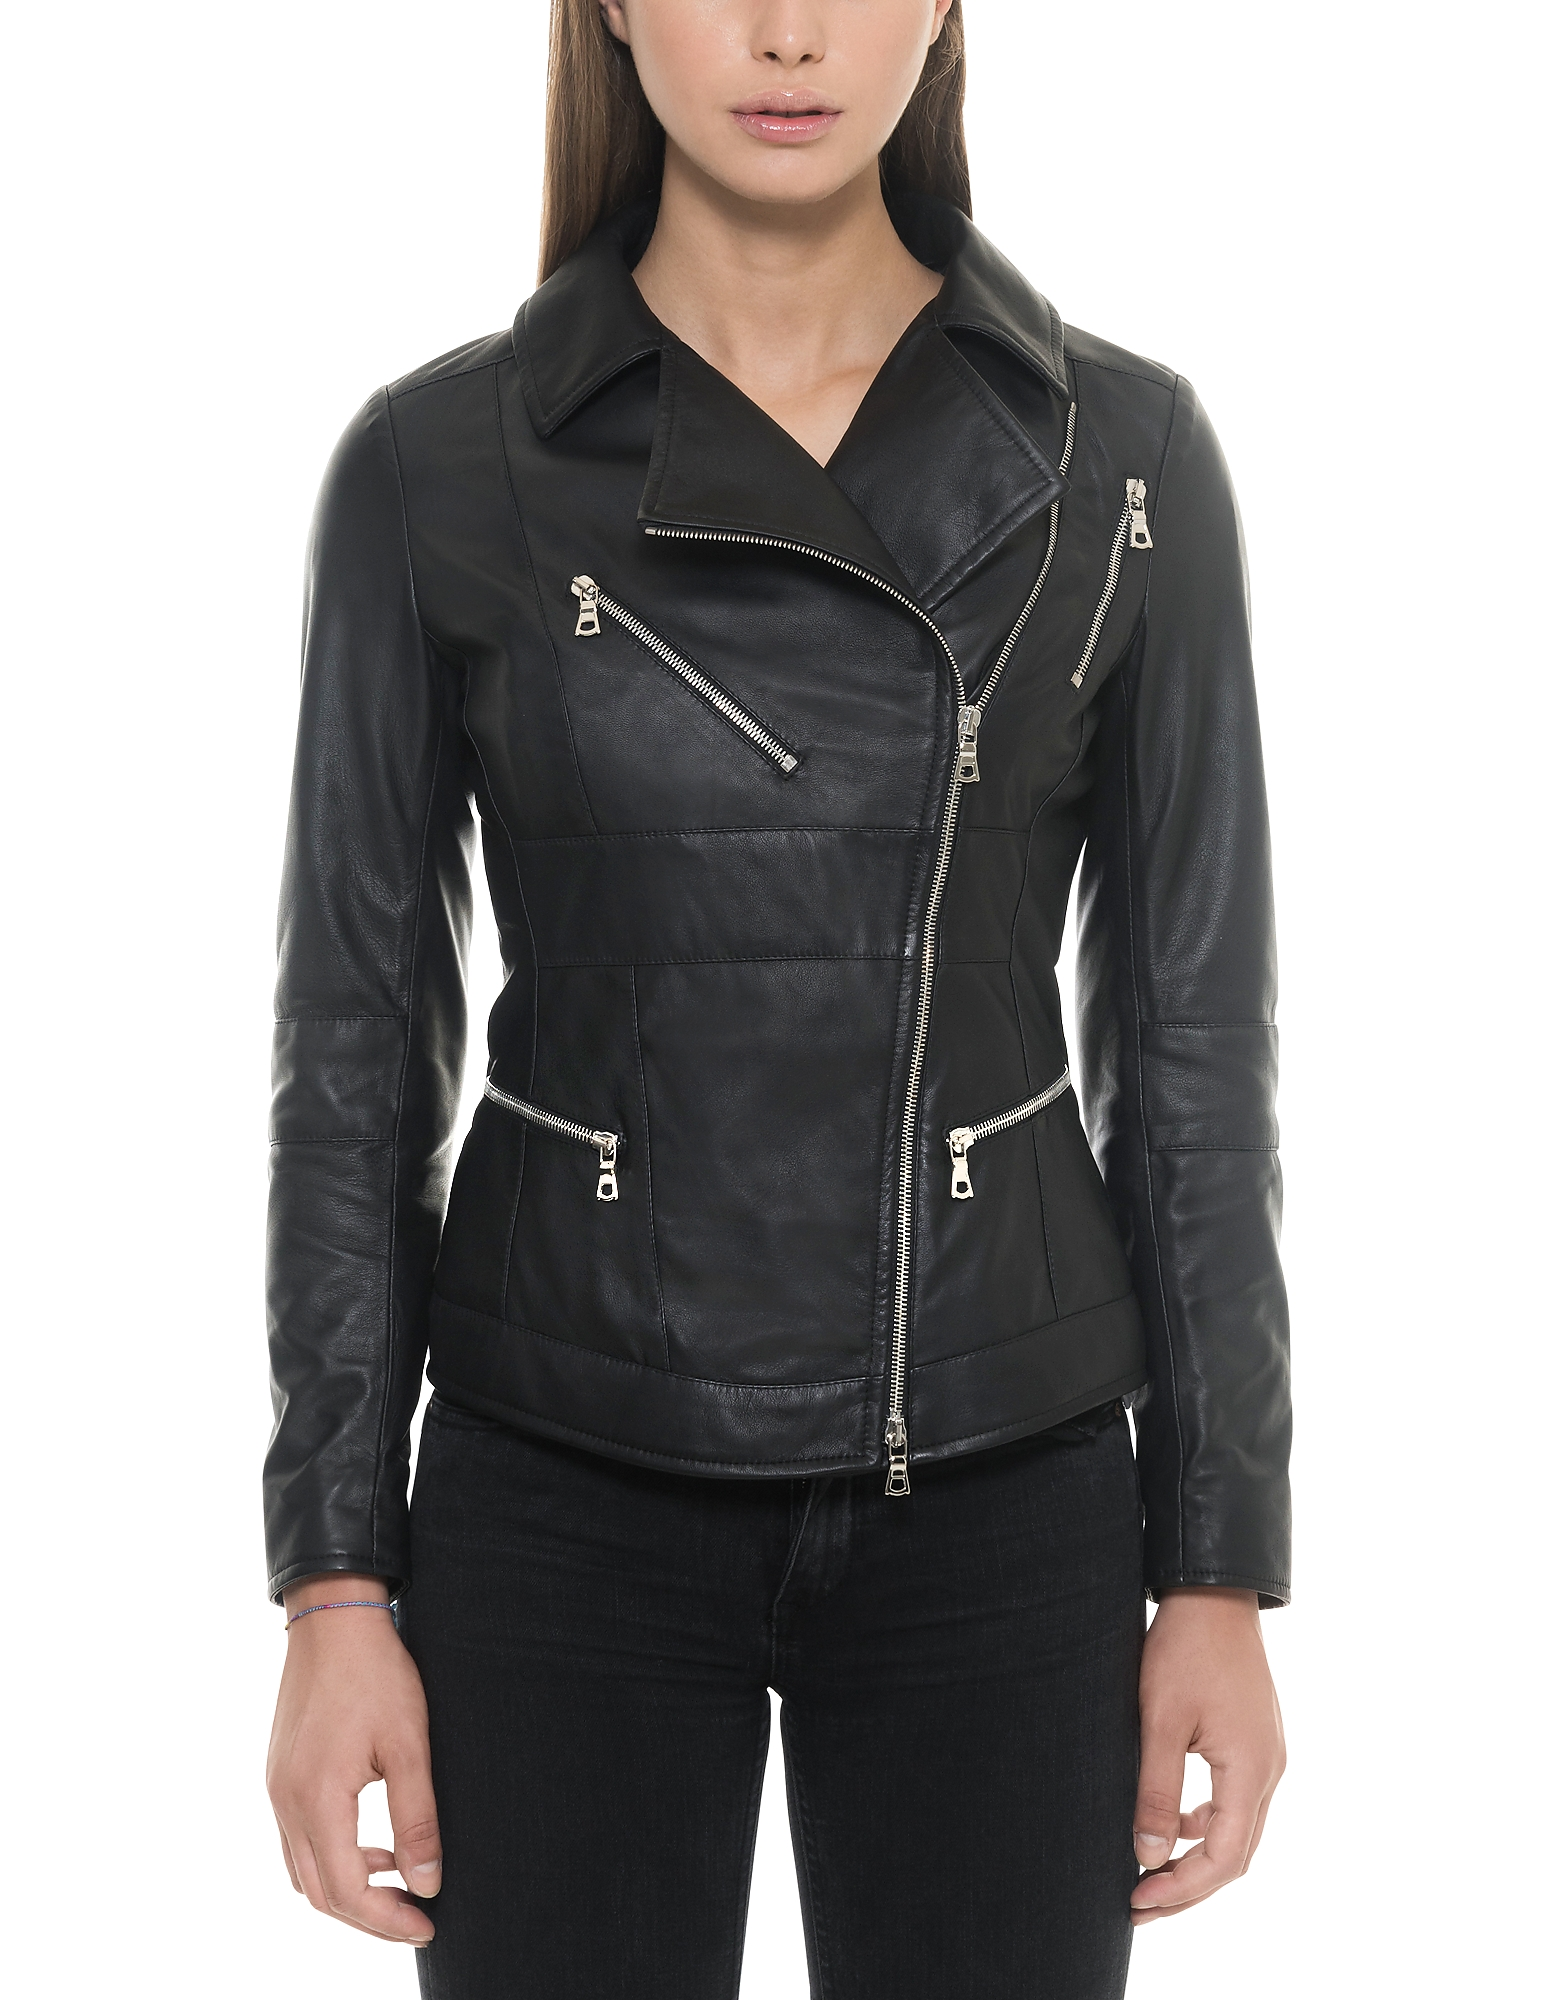 Forzieri Leather Jackets, Black Leather Women's Biker Jacket